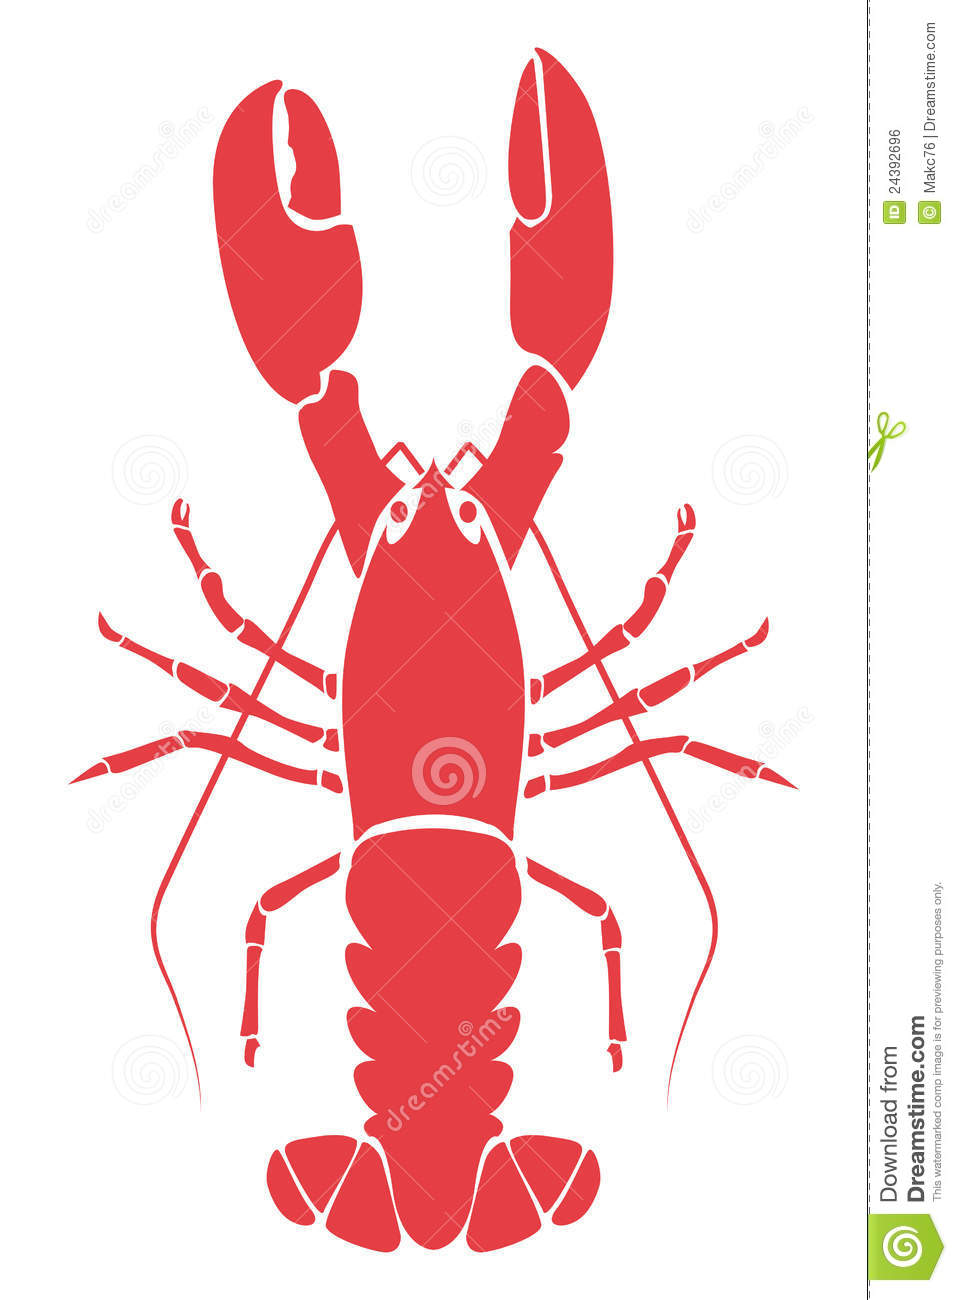 Lobster Illustration Royalty Free Stock Image - Image: 24392696